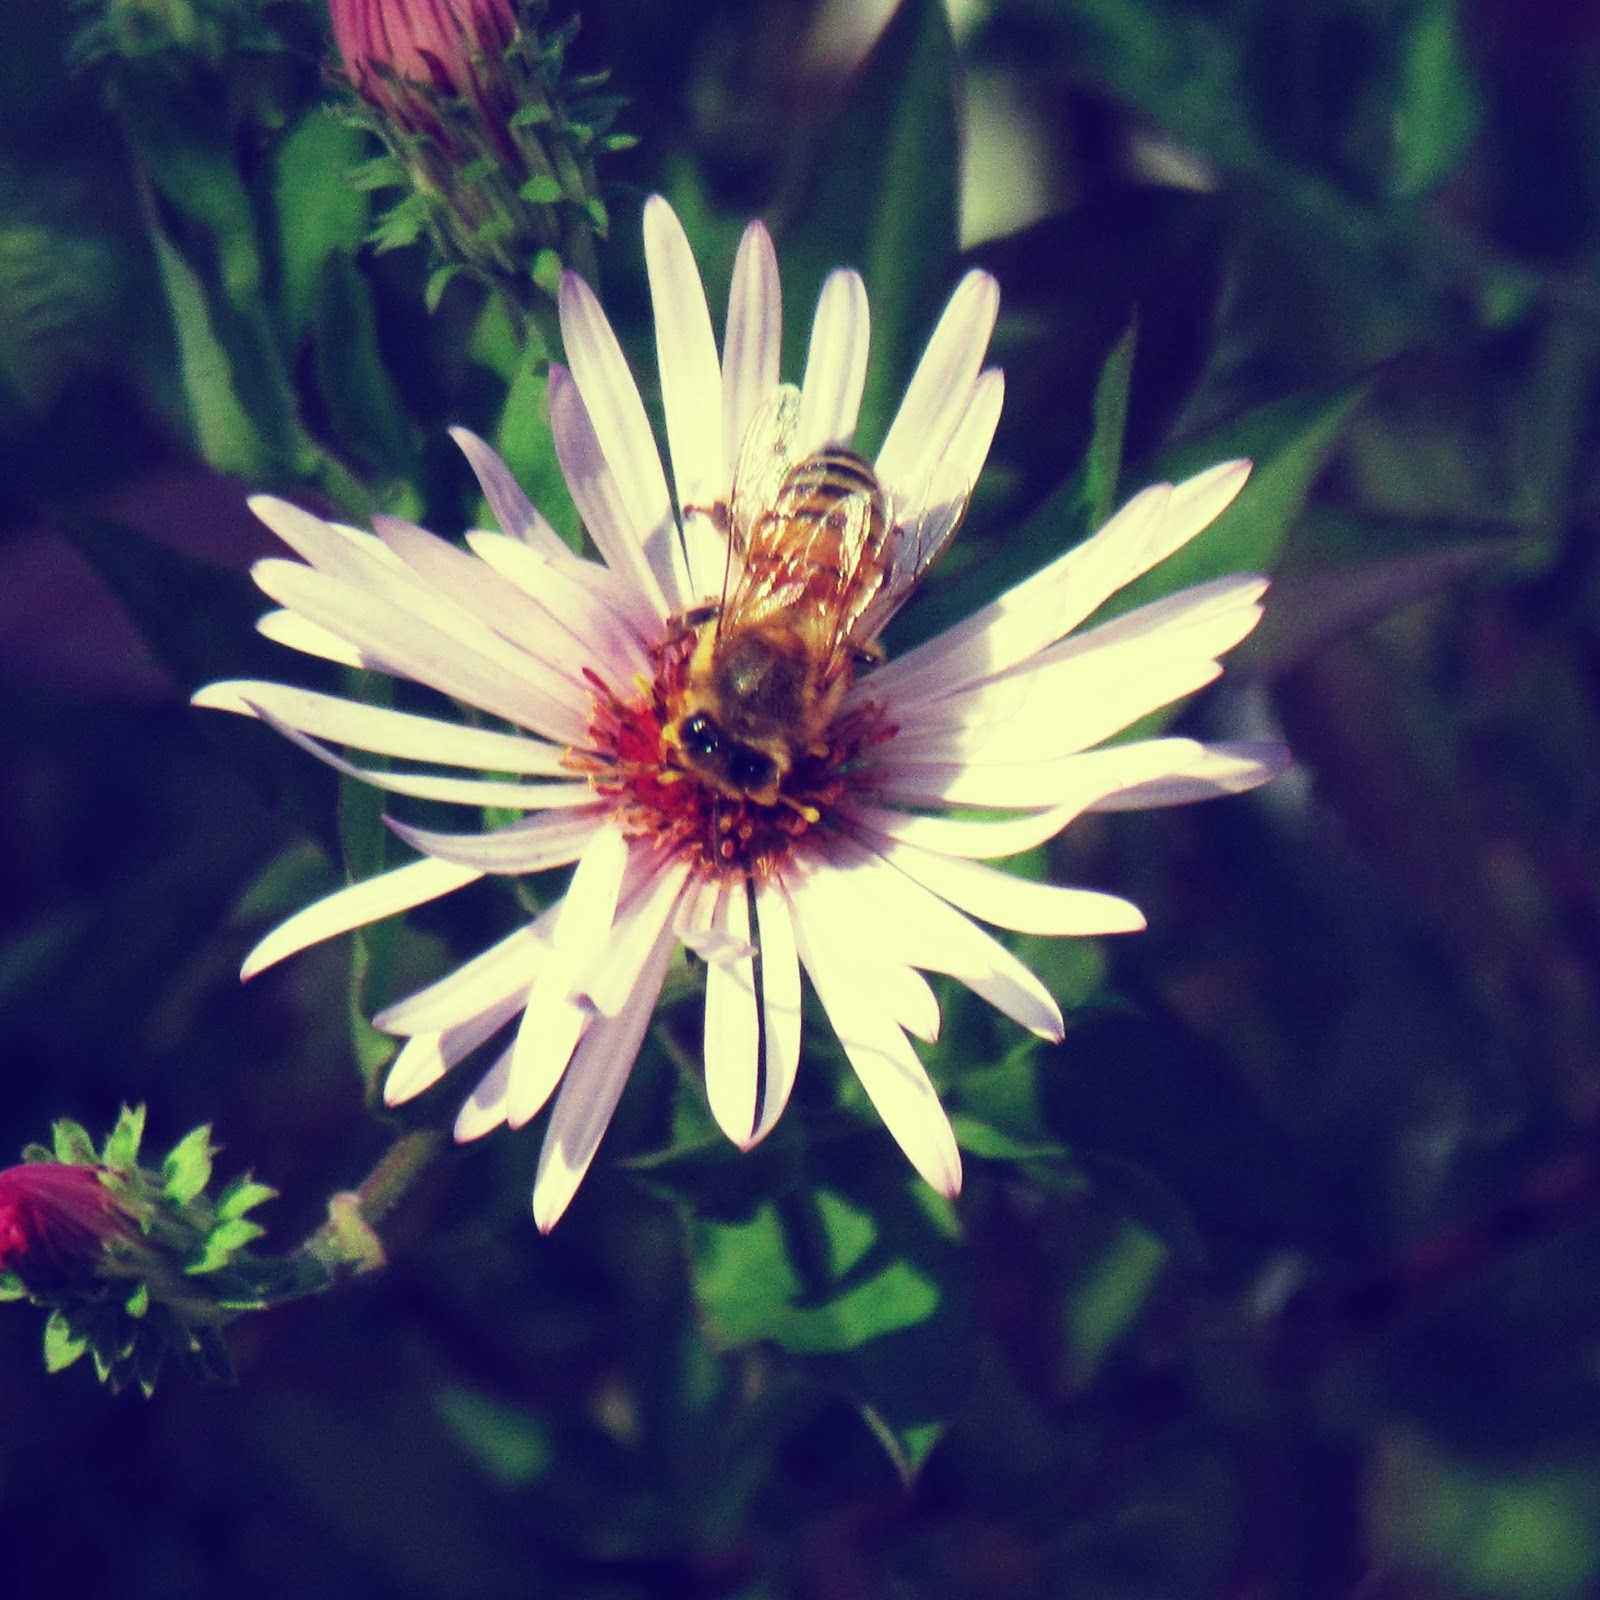 A blooming flower with a bee named Hazel pollinating it